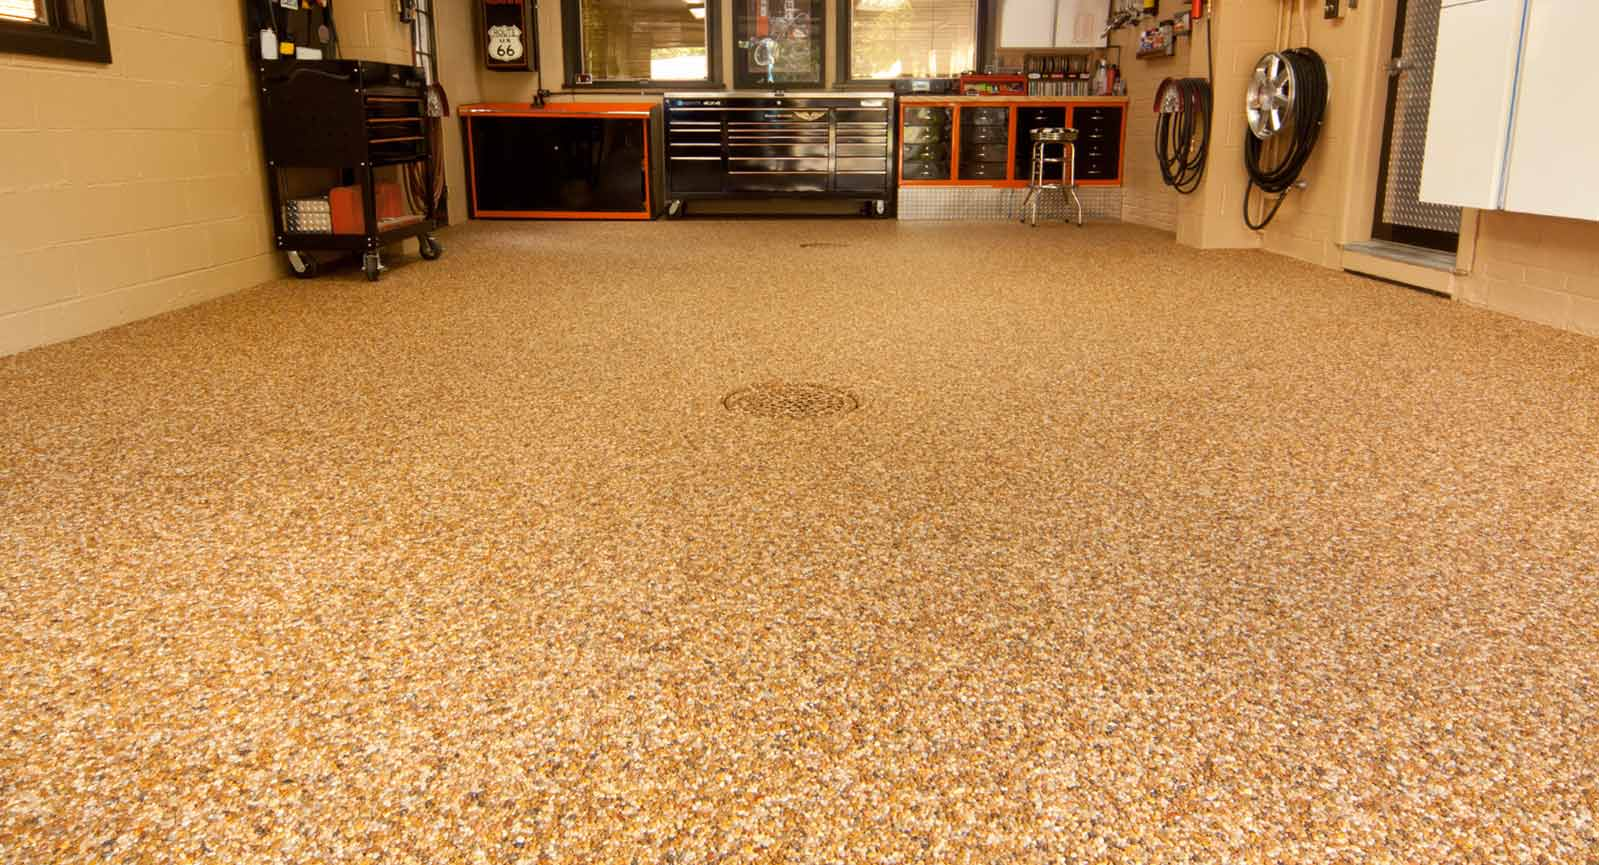 brown solid epoxy paint for concrete floor in basement & Bring Basement Floor Covering More Vivid | HomesFeed